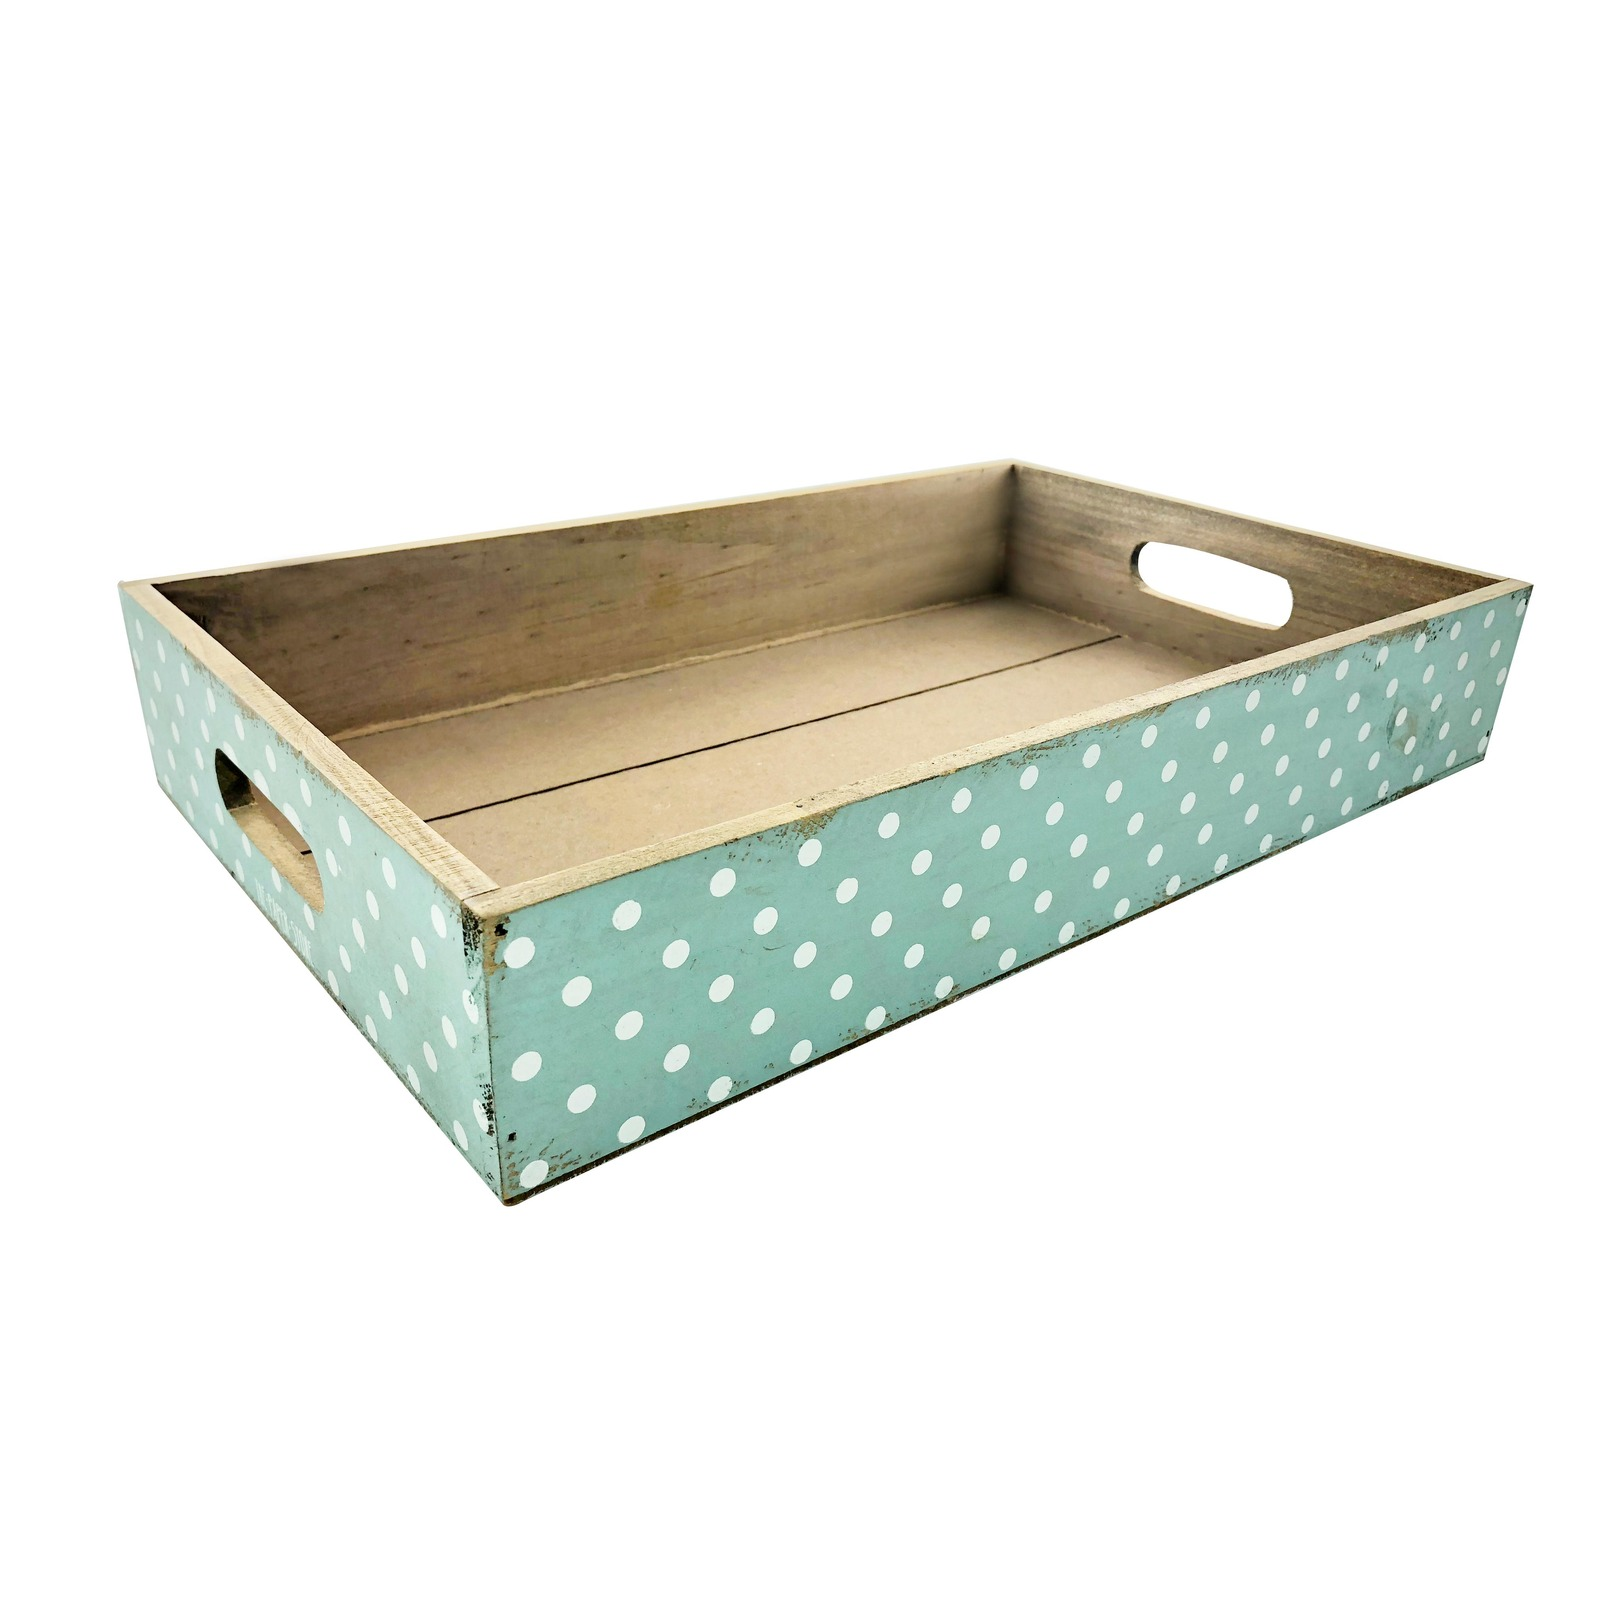 The Paper Stone Vintage Wooden Tray - Medium